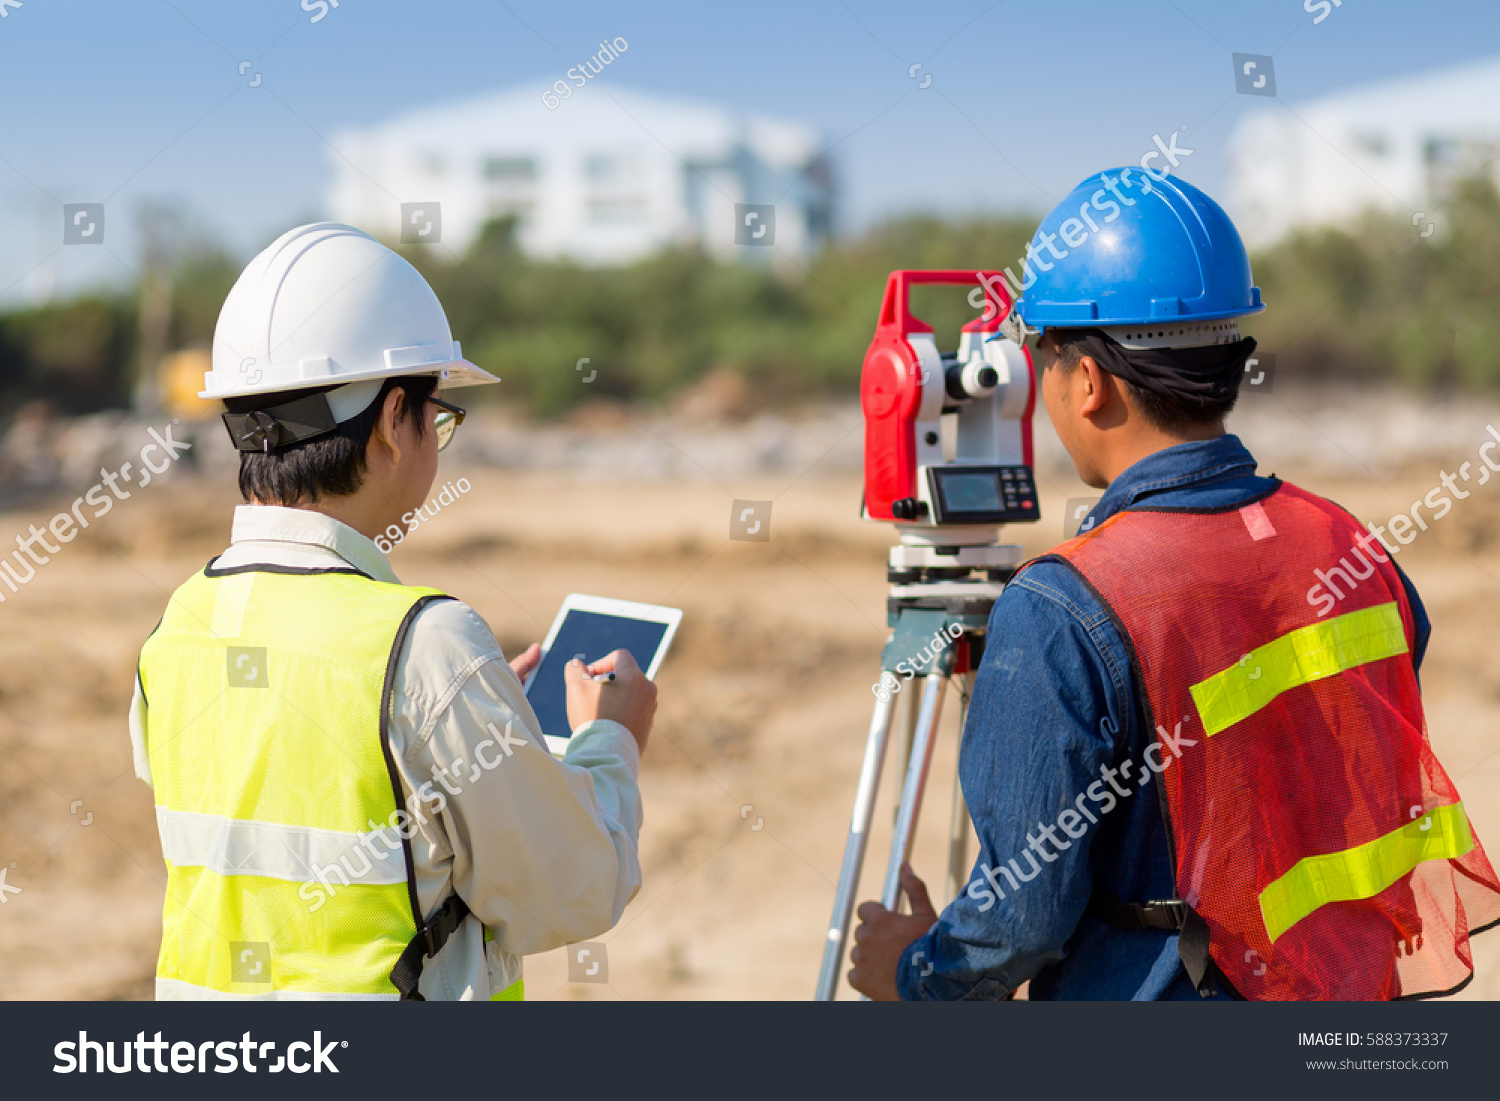 Construction Engineer Foreman Worker Checking Construction Stock Photo 588373337 - Shutterstock